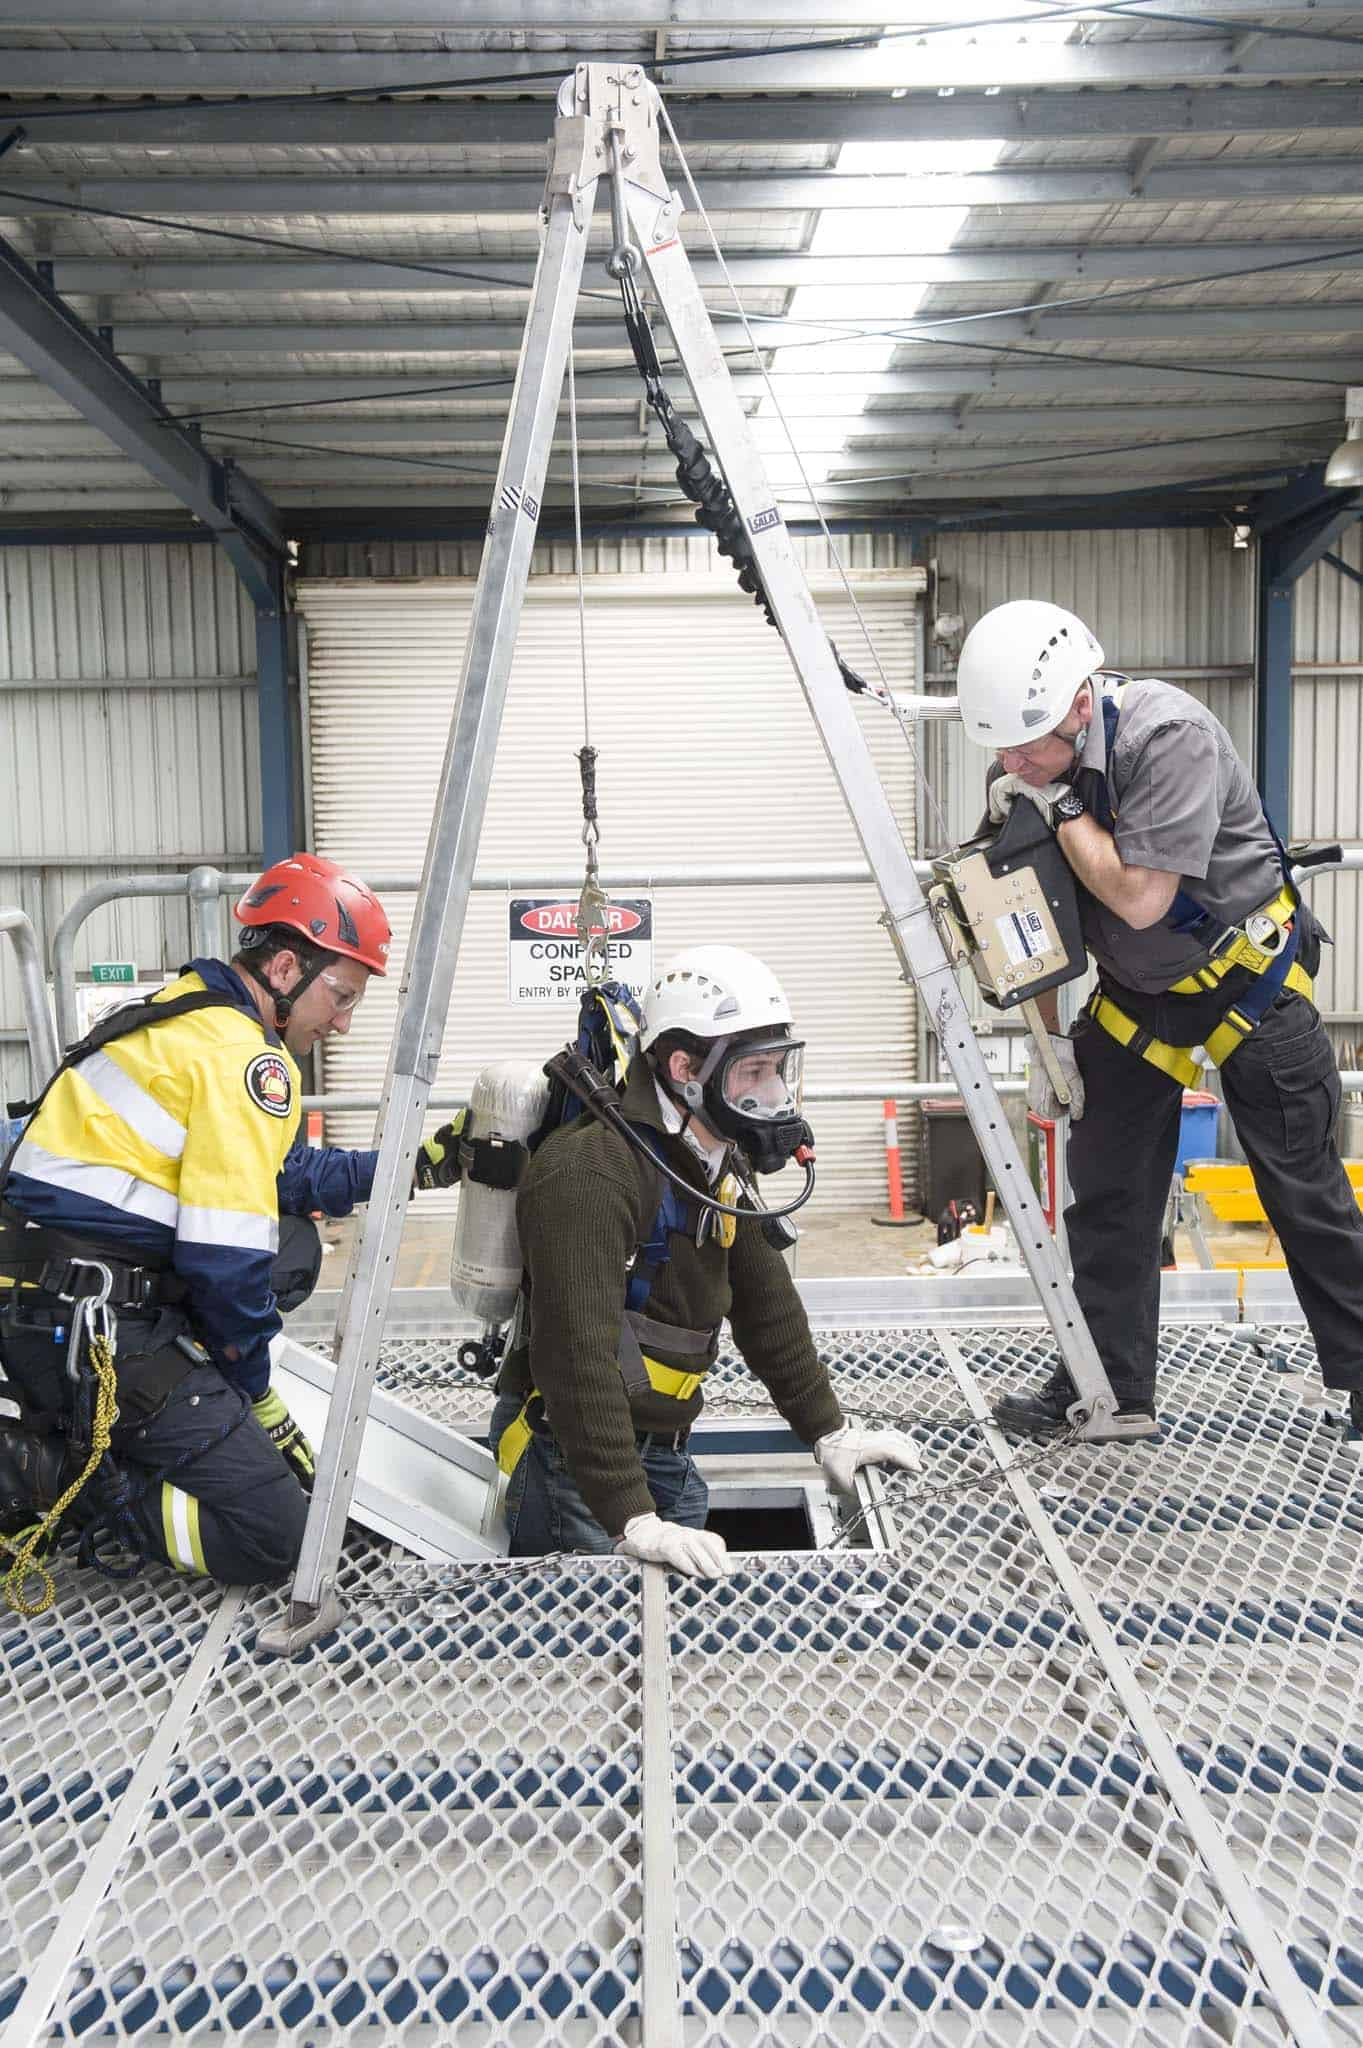 FSA Safety Equipment and Facilities